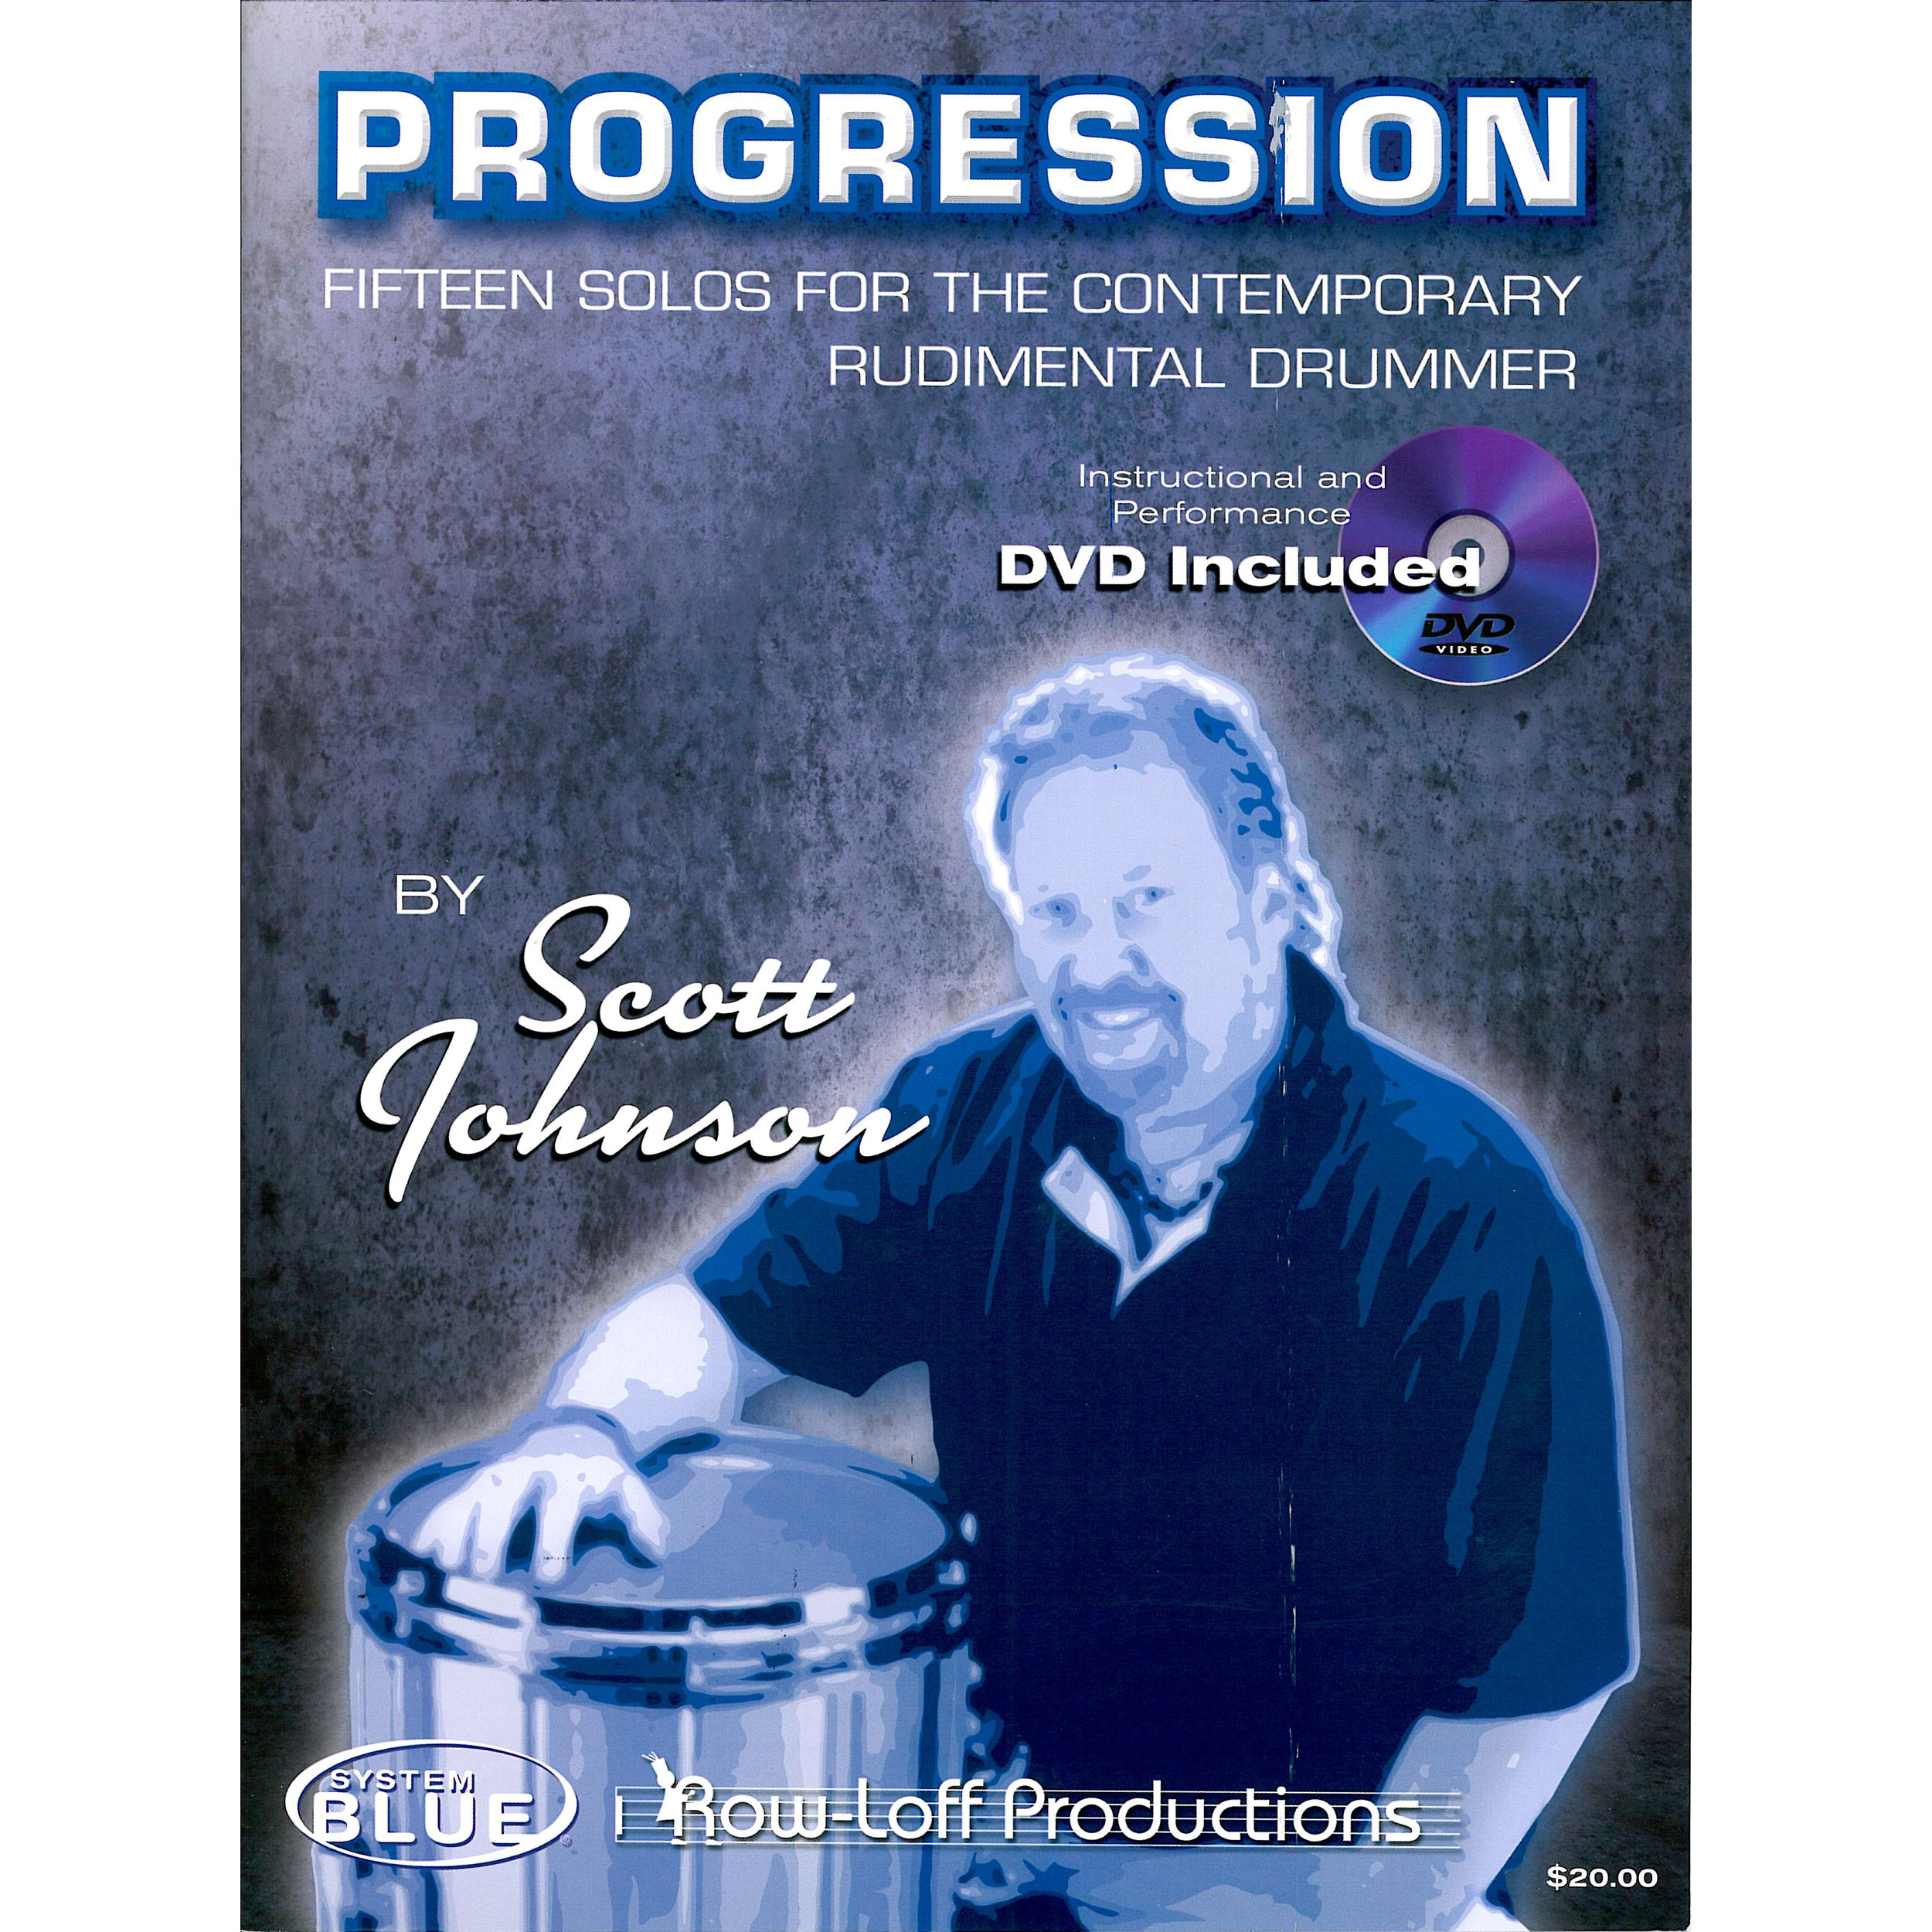 Progression by Scott Johnson